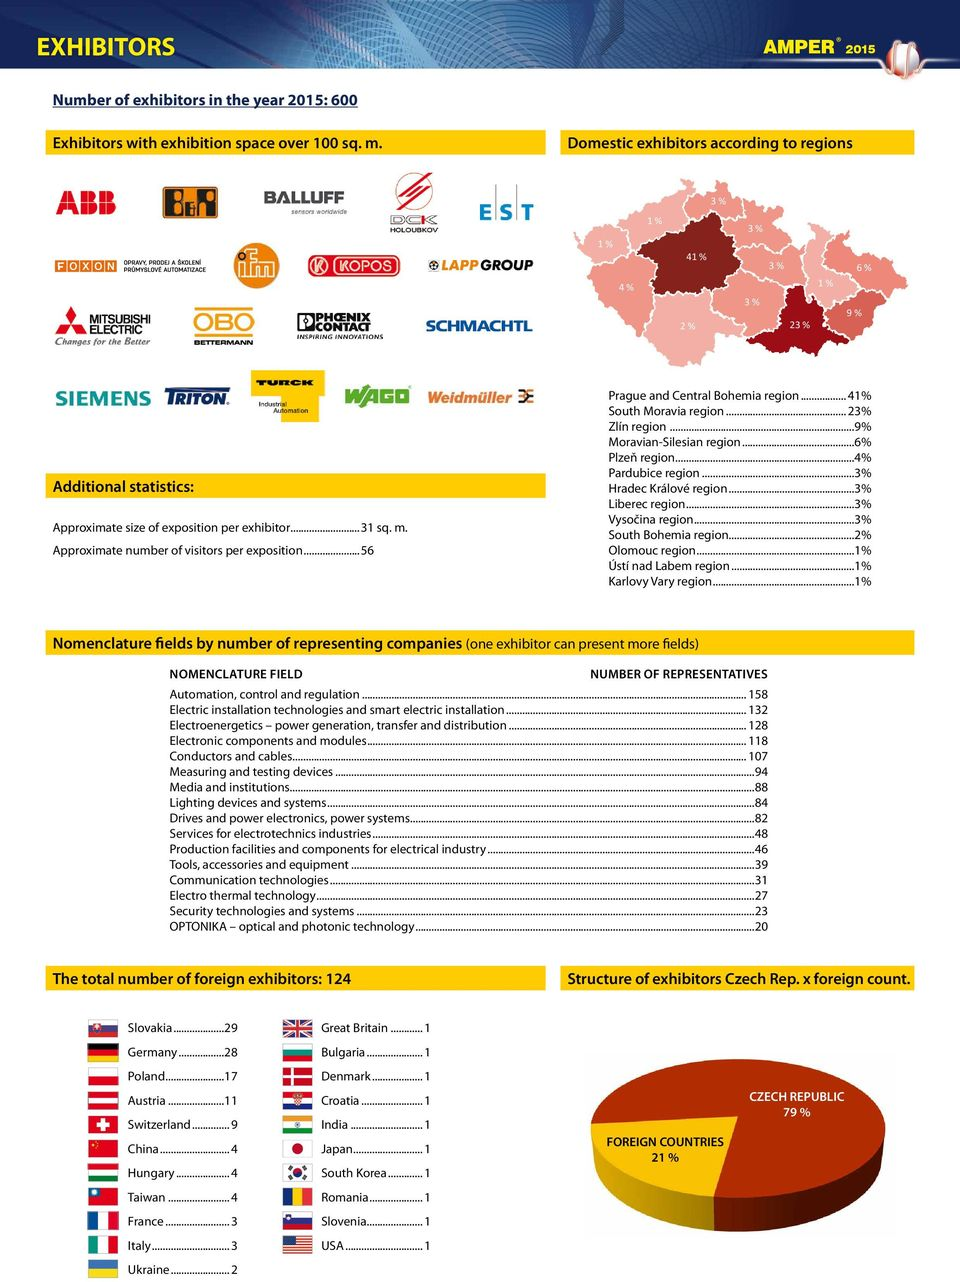 Approximate number of visitors per exposition...56 Prague and Central Bohemia region... 41% South Moravia region... 23% Zlín region...9% Moravian-Silesian region...6% Plzeň region...4% Pardubice region.